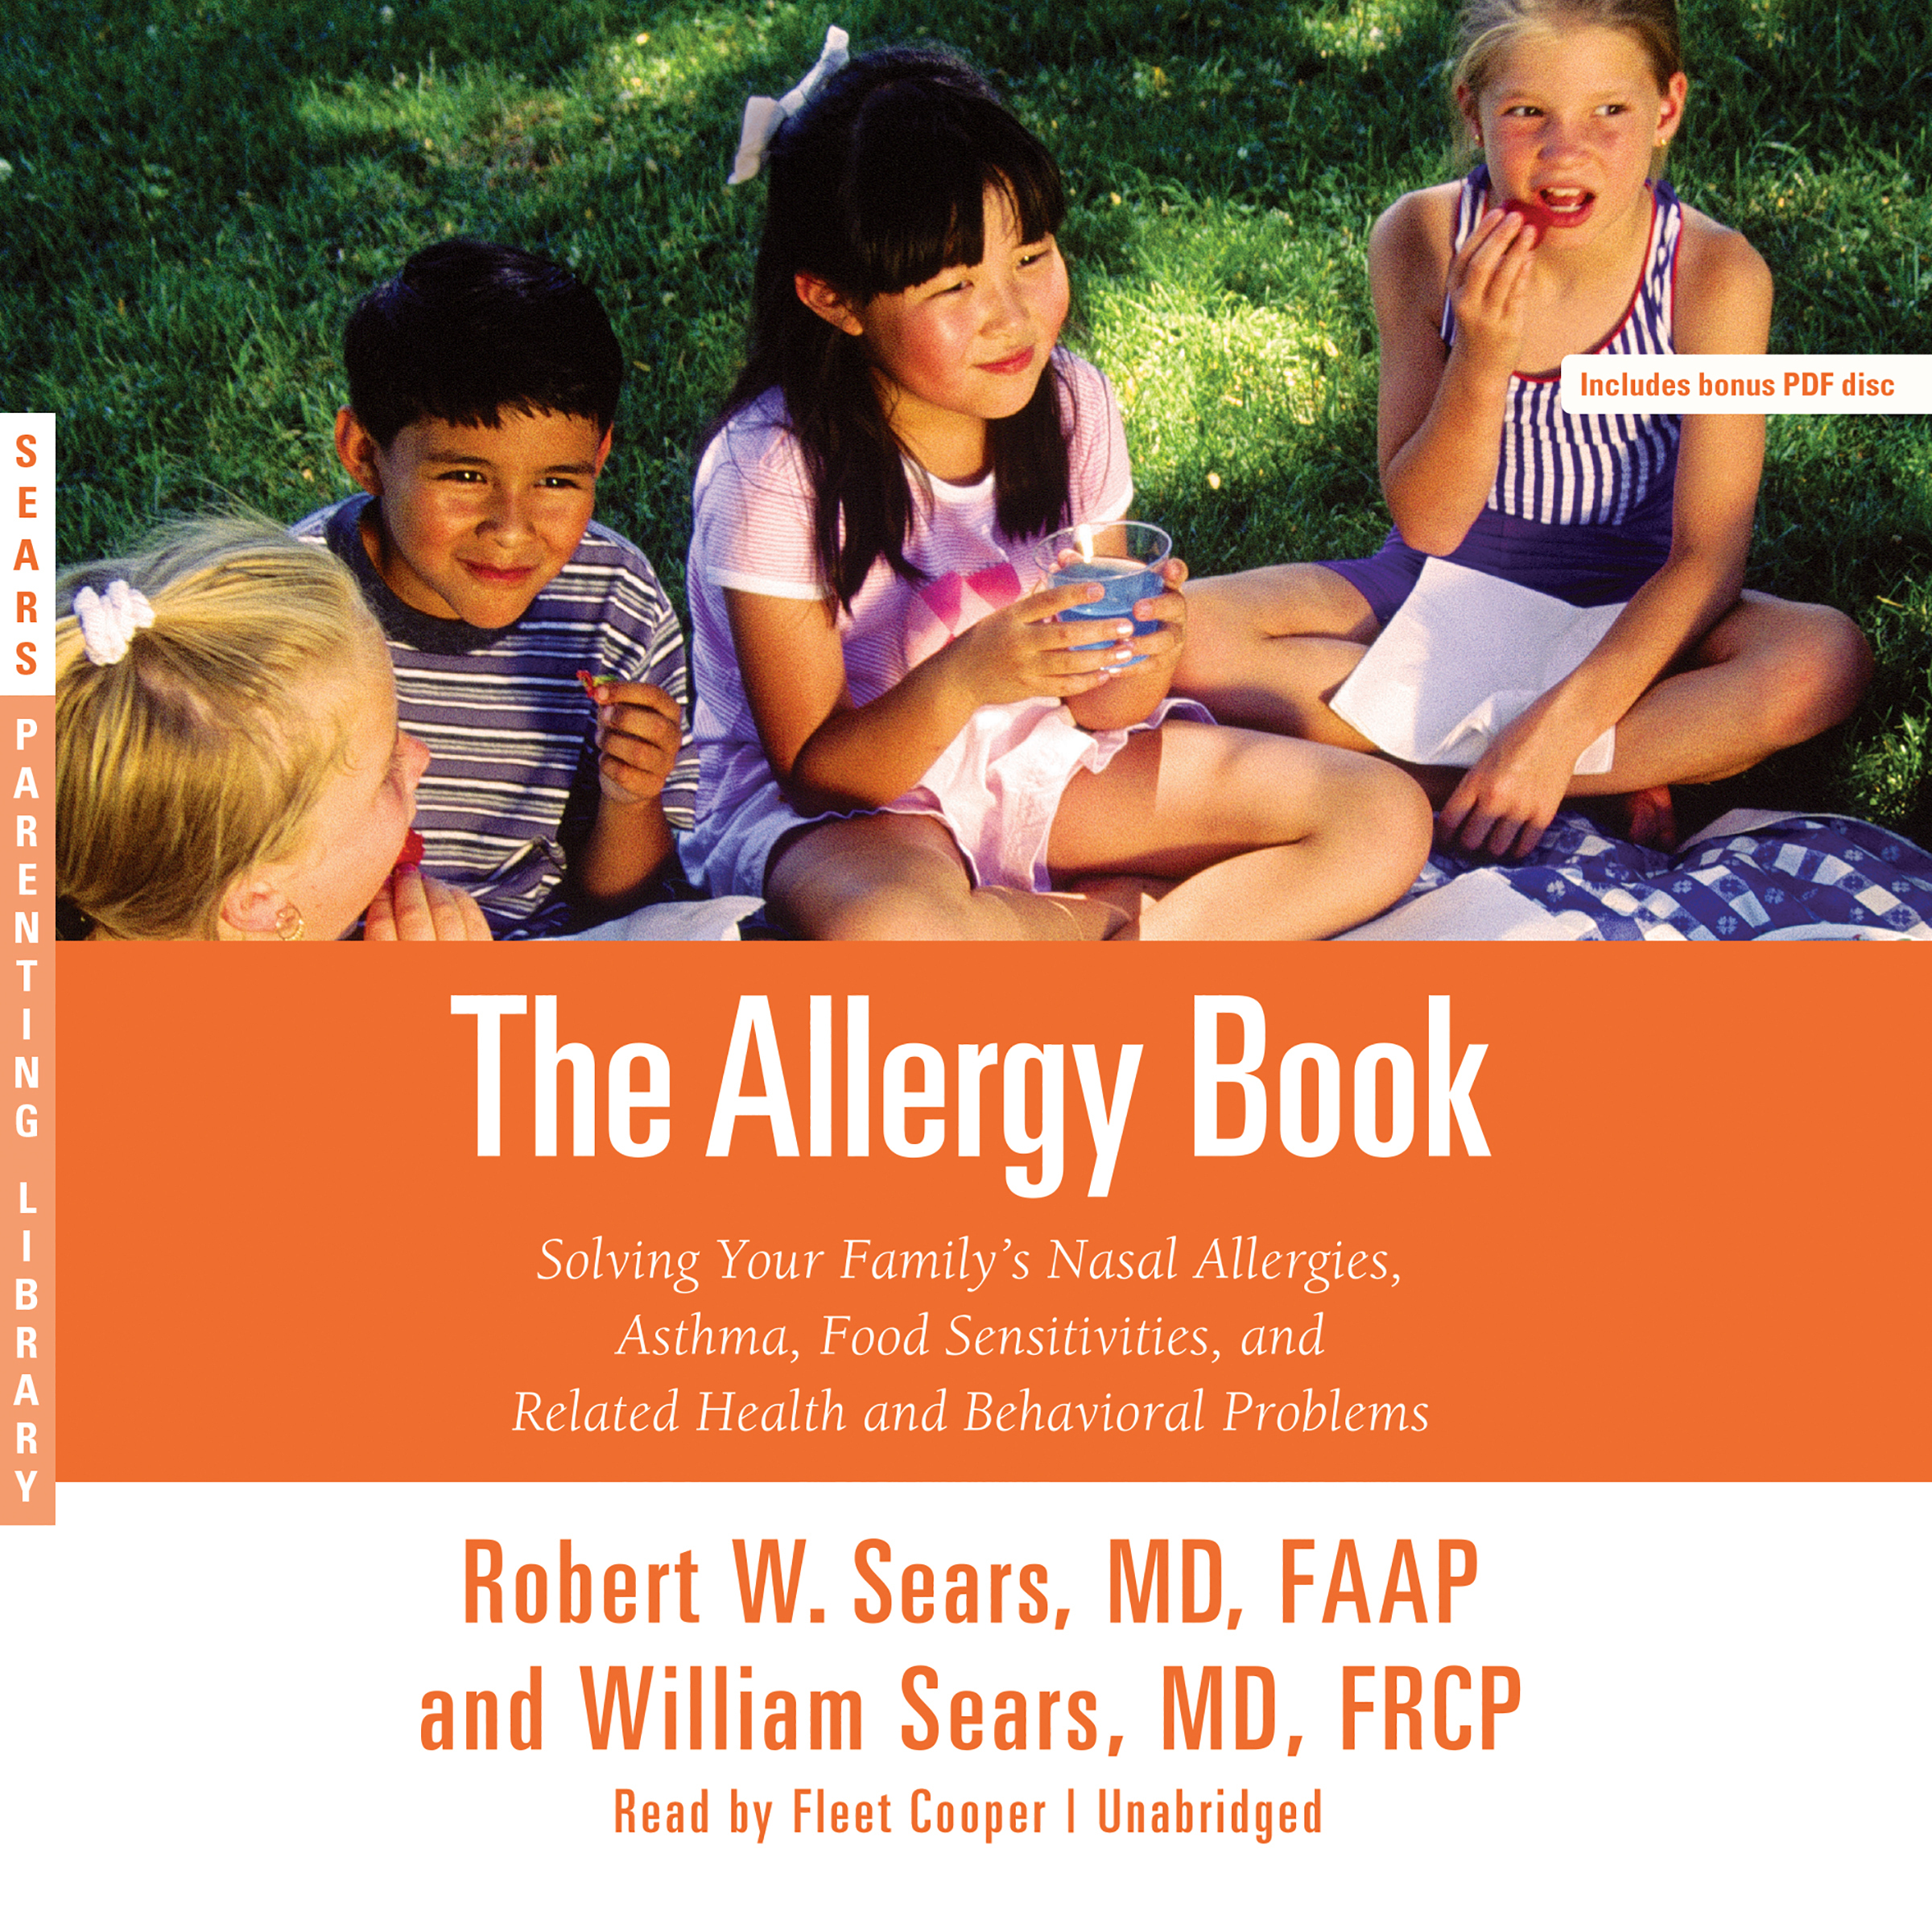 Printable The Allergy Book: Solving Your Family's Nasal Allergies, Asthma, Food Sensitivities, and Related Health and Behavioral Problems Audiobook Cover Art